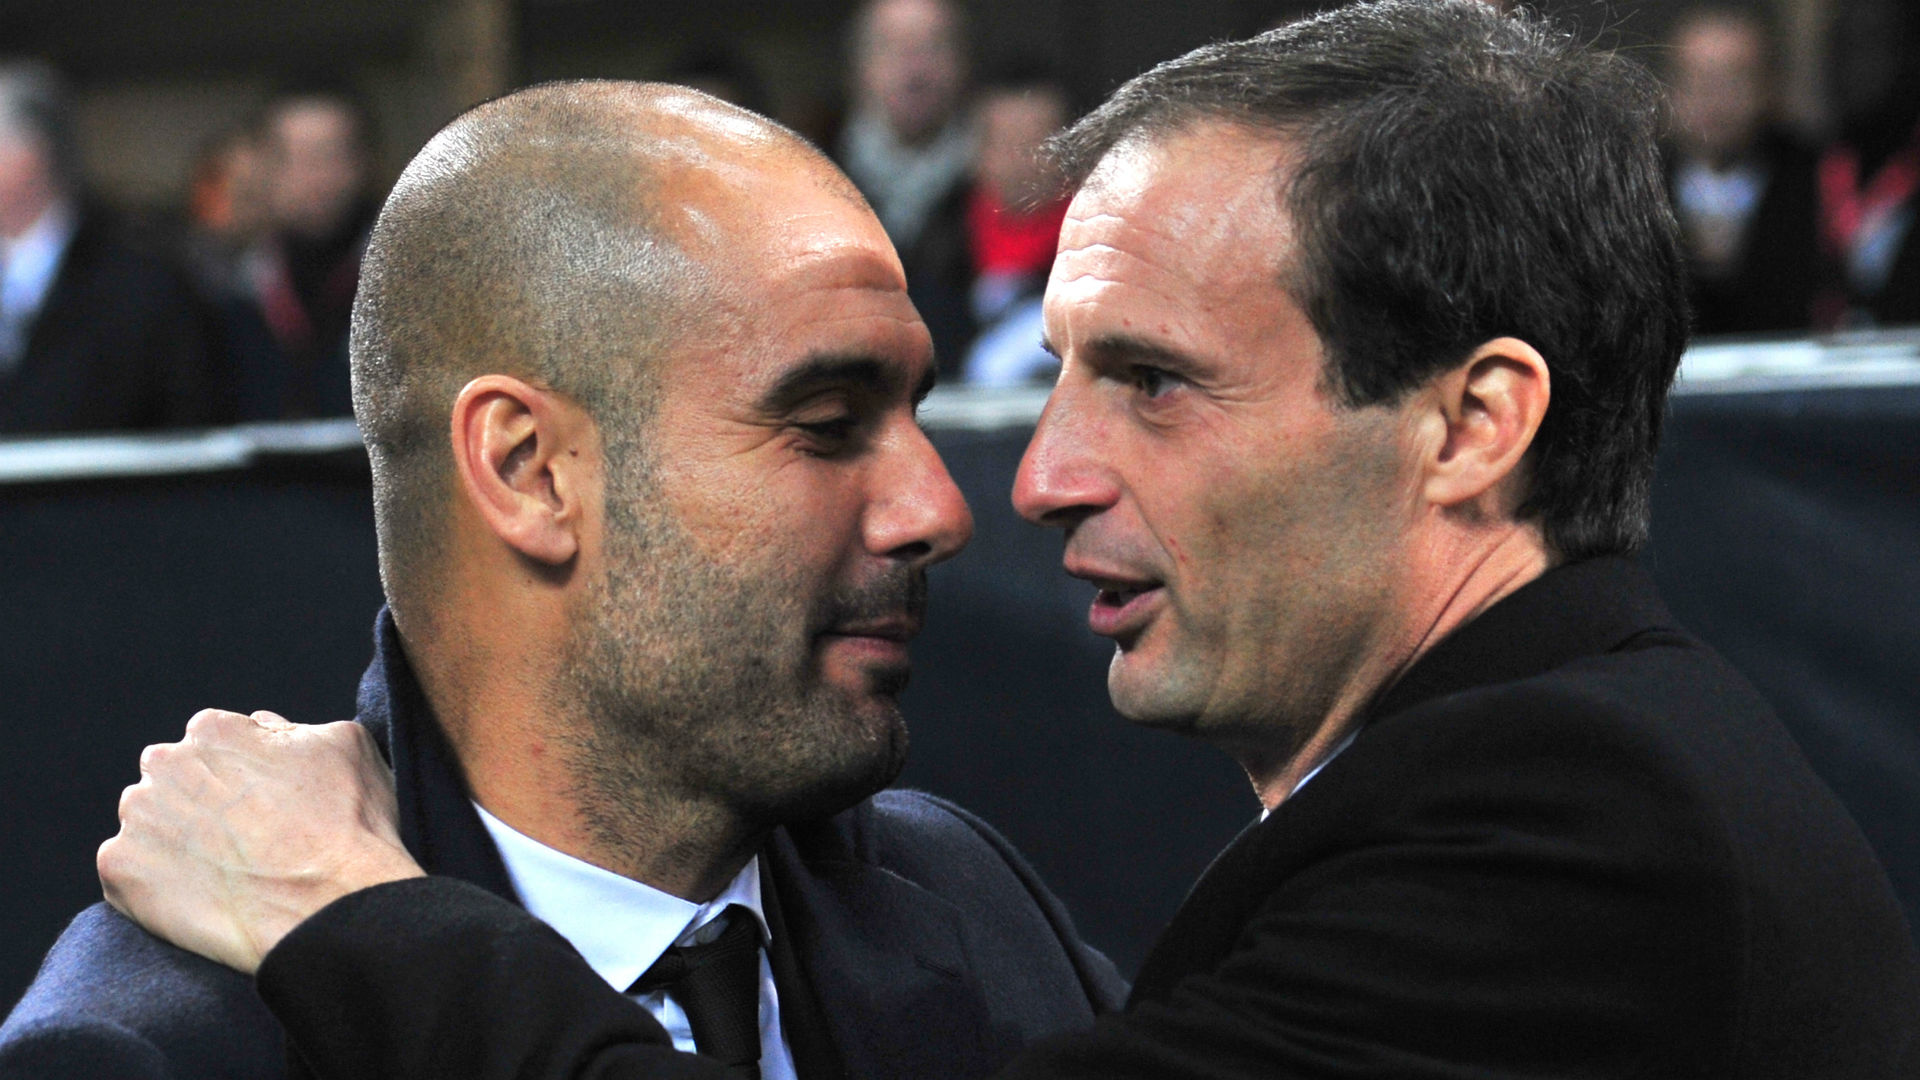 A manager of Manchester is coming - Allegri mischievously drops Guardiola hint